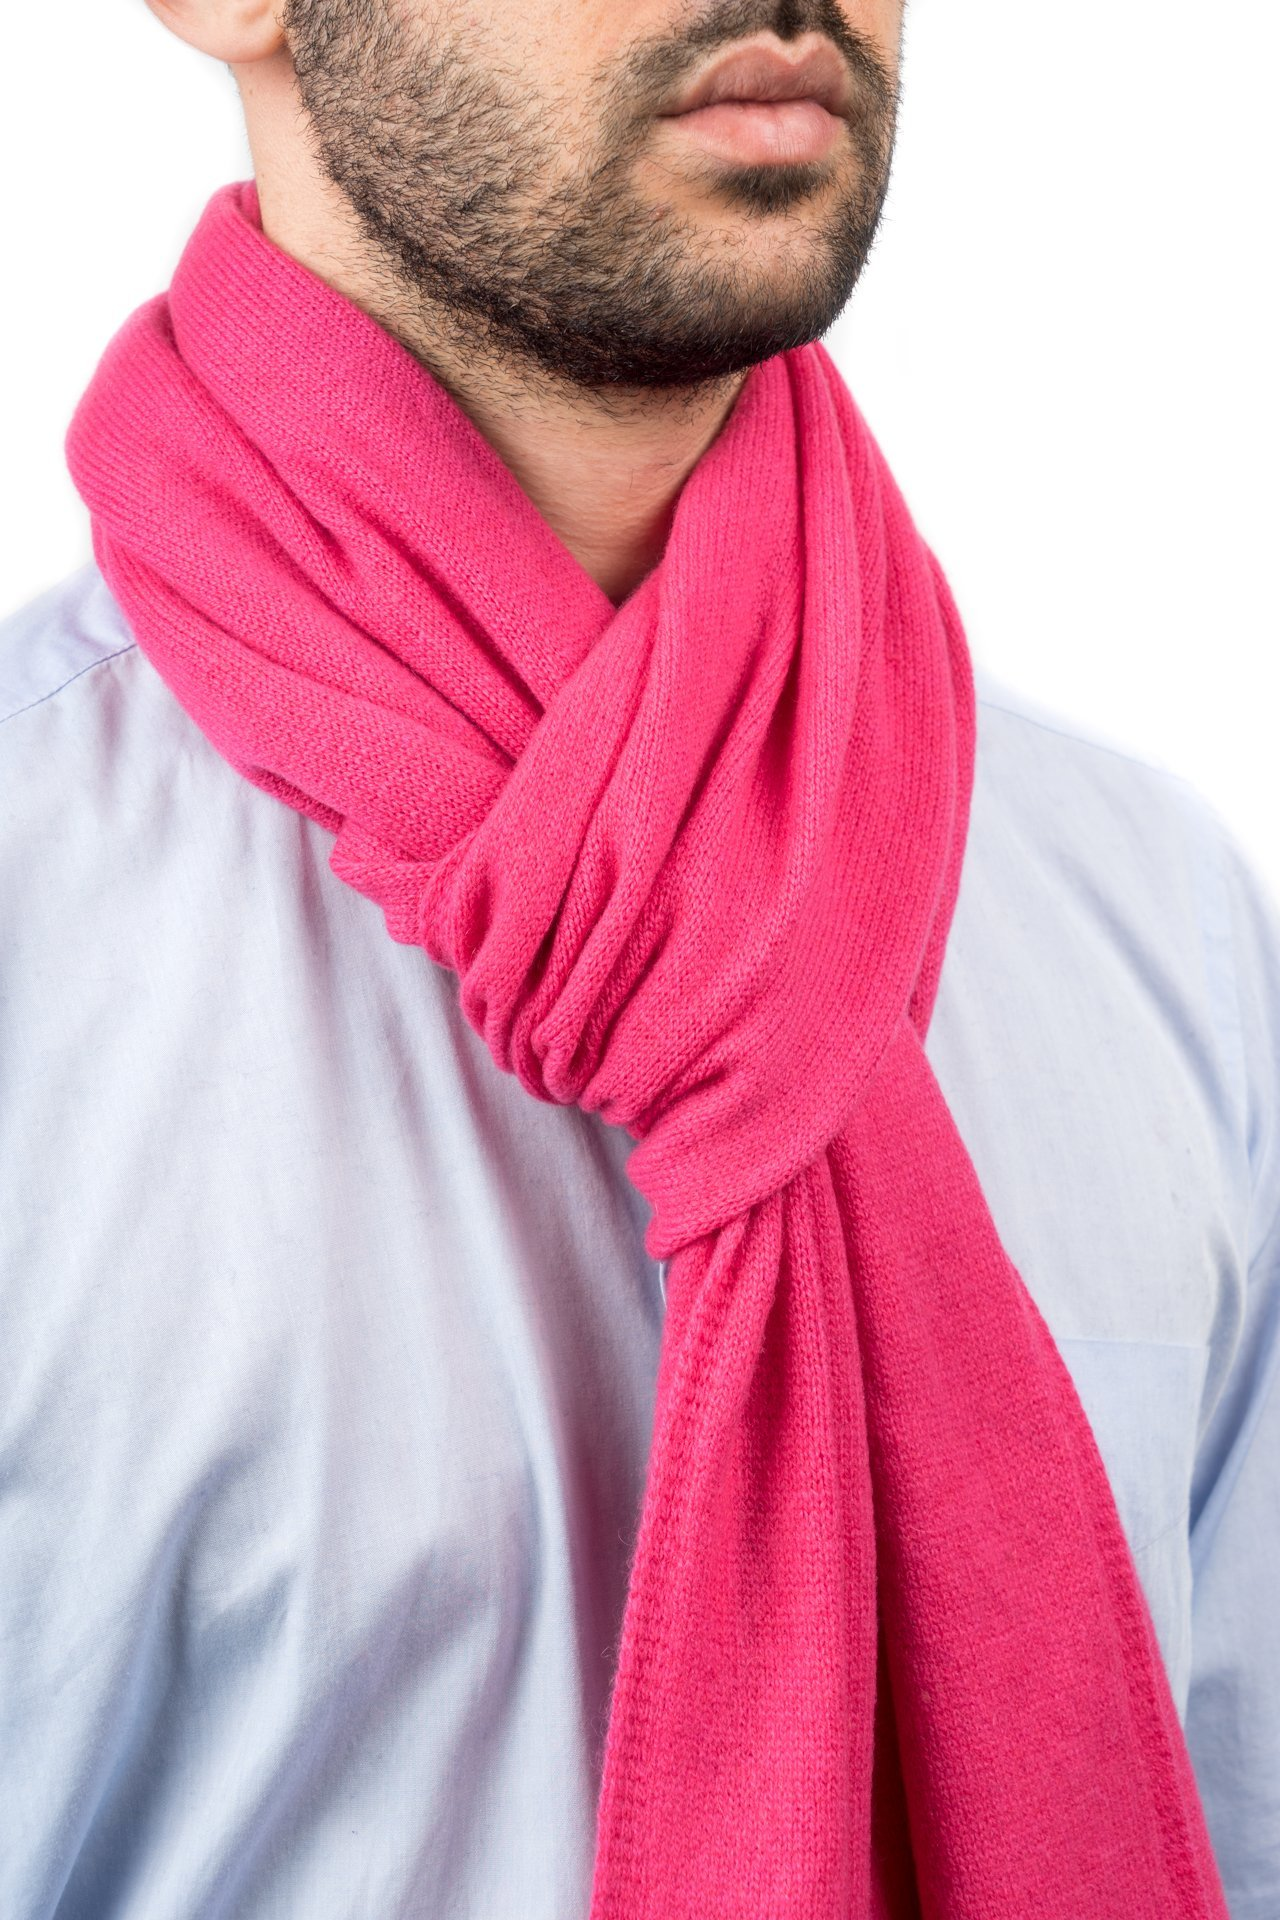 Dalle Piane Cashmere - Scarf 100% cashmere - Made in Italy - Woman/Man, Color: Fuxia, One size